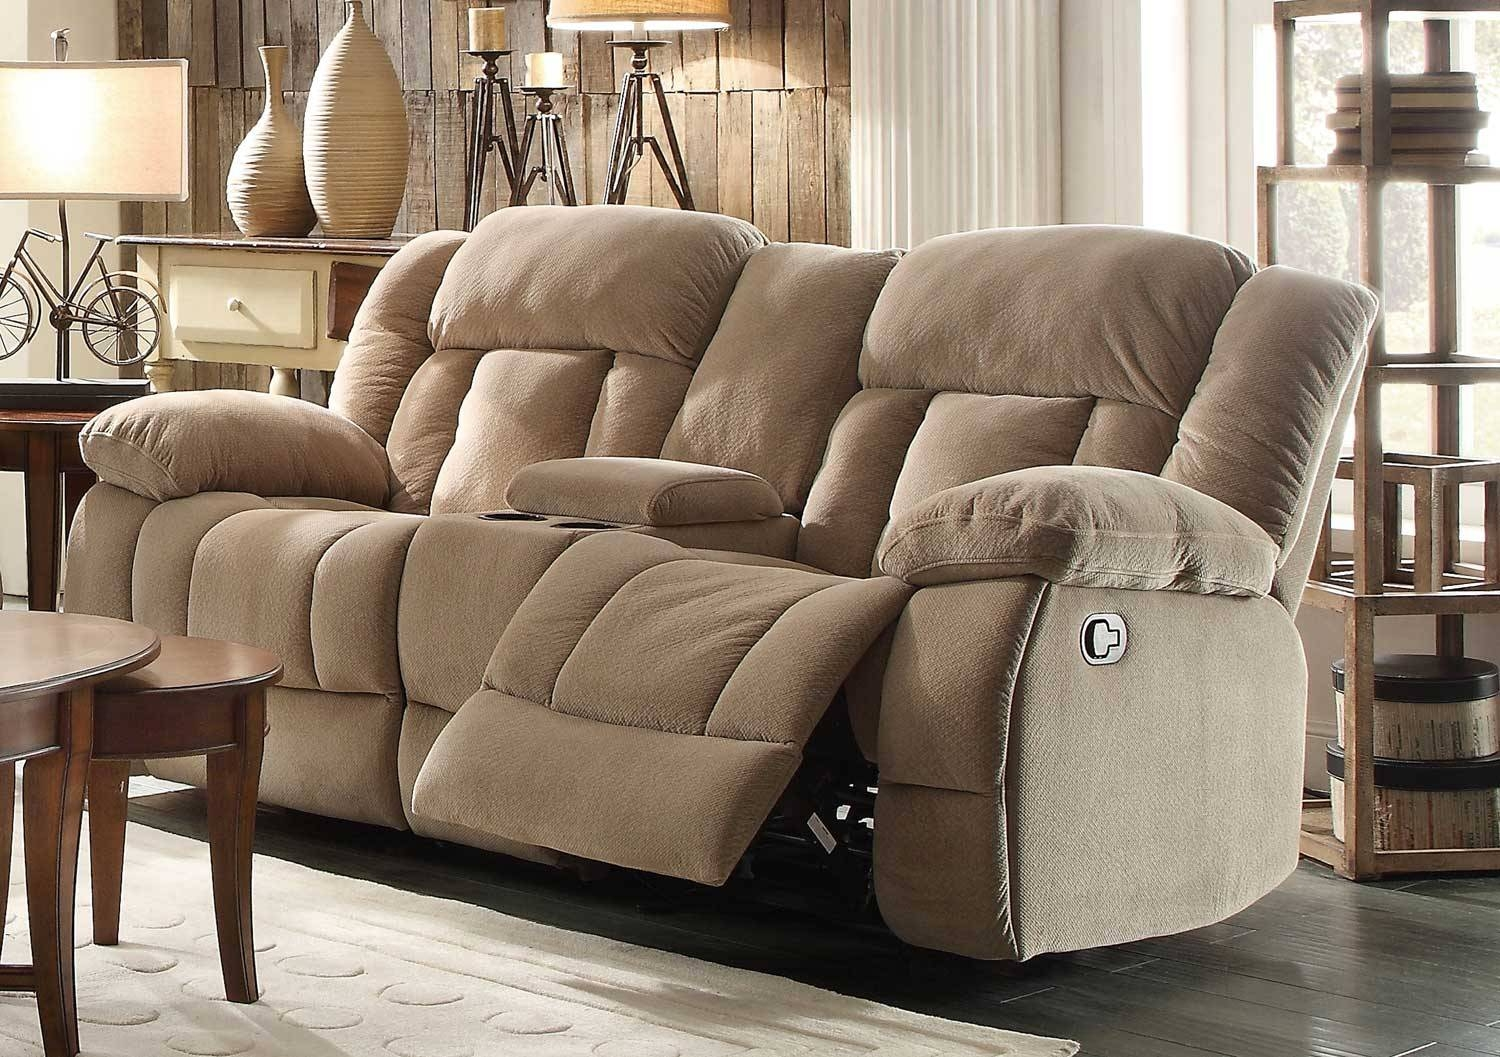 New Double Recliner Sofa With Console 17 Sofas And Couches Set In Sofas With Console (View 13 of 15)